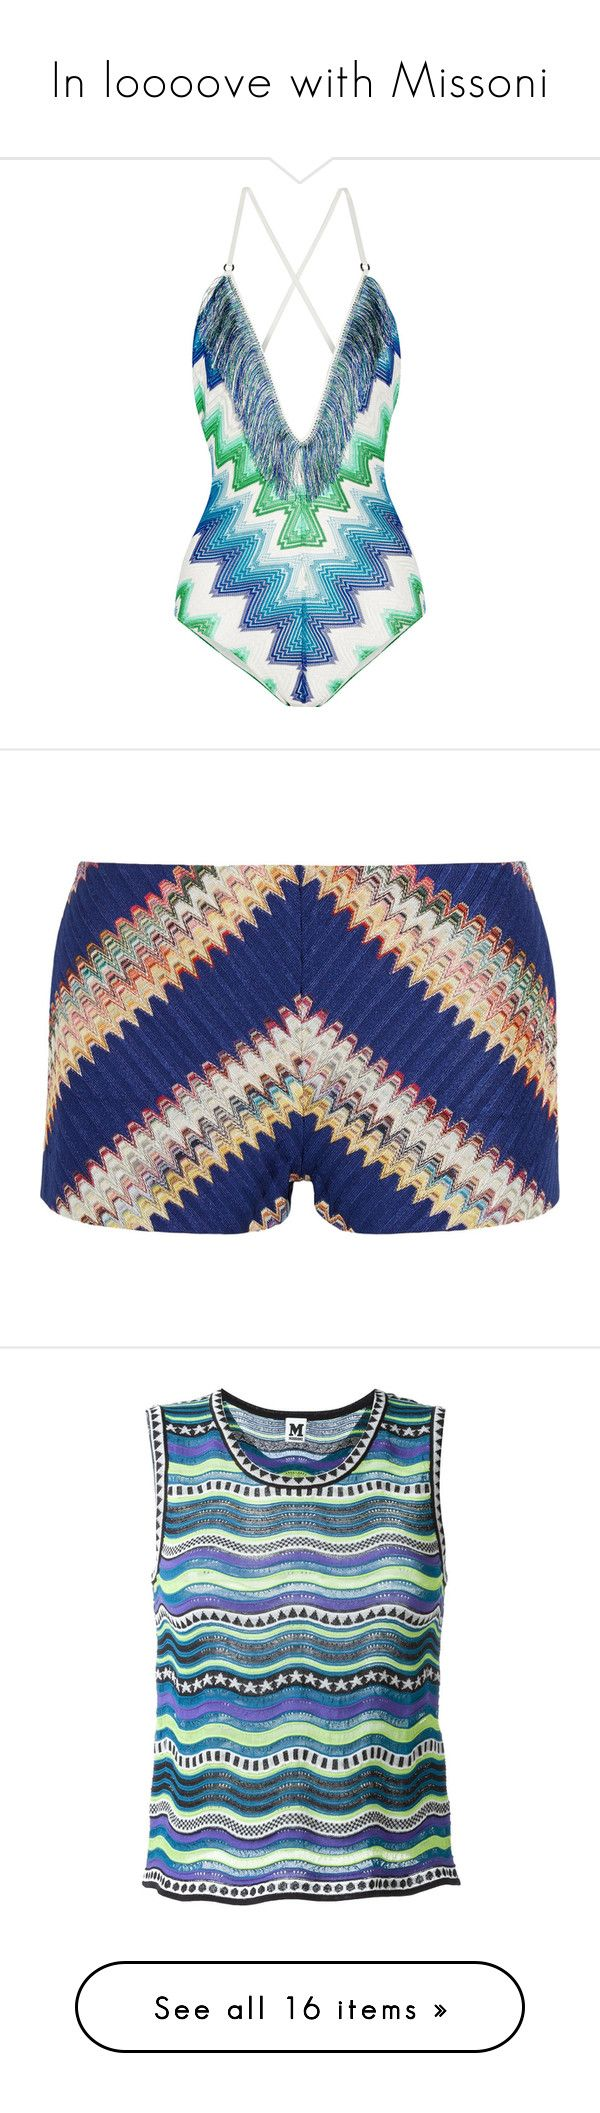 """""""In loooove with Missoni"""" by elisaesmann ❤ liked on Polyvore featuring swimwear, one-piece swimsuits, chevron one piece swimsuit, lace up swimsuit, swim suits, bohemian bathing suits, boho fringe bathing suit, shorts, missoni and blue"""